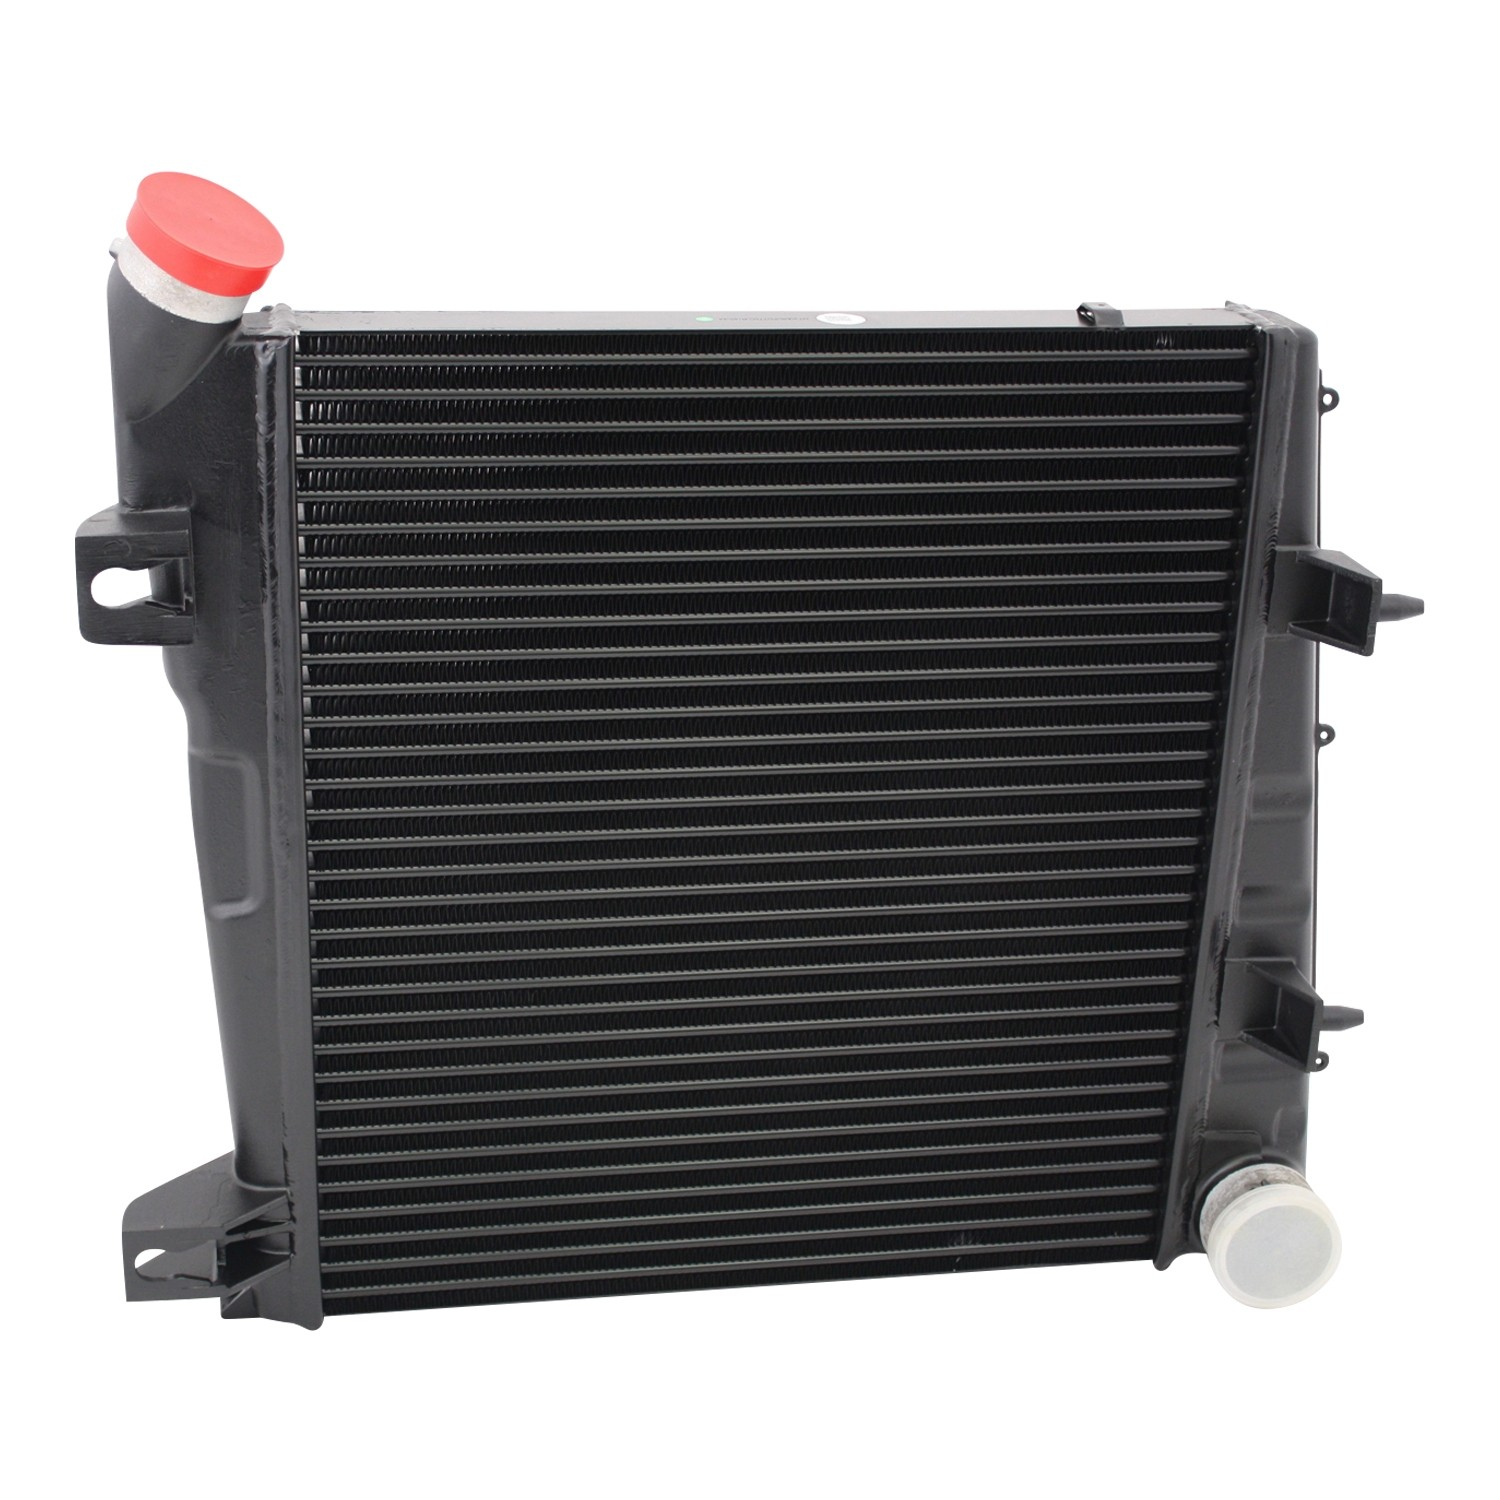 Ford F250 F350 Super Duty 6.4L Charge Air Cooler.